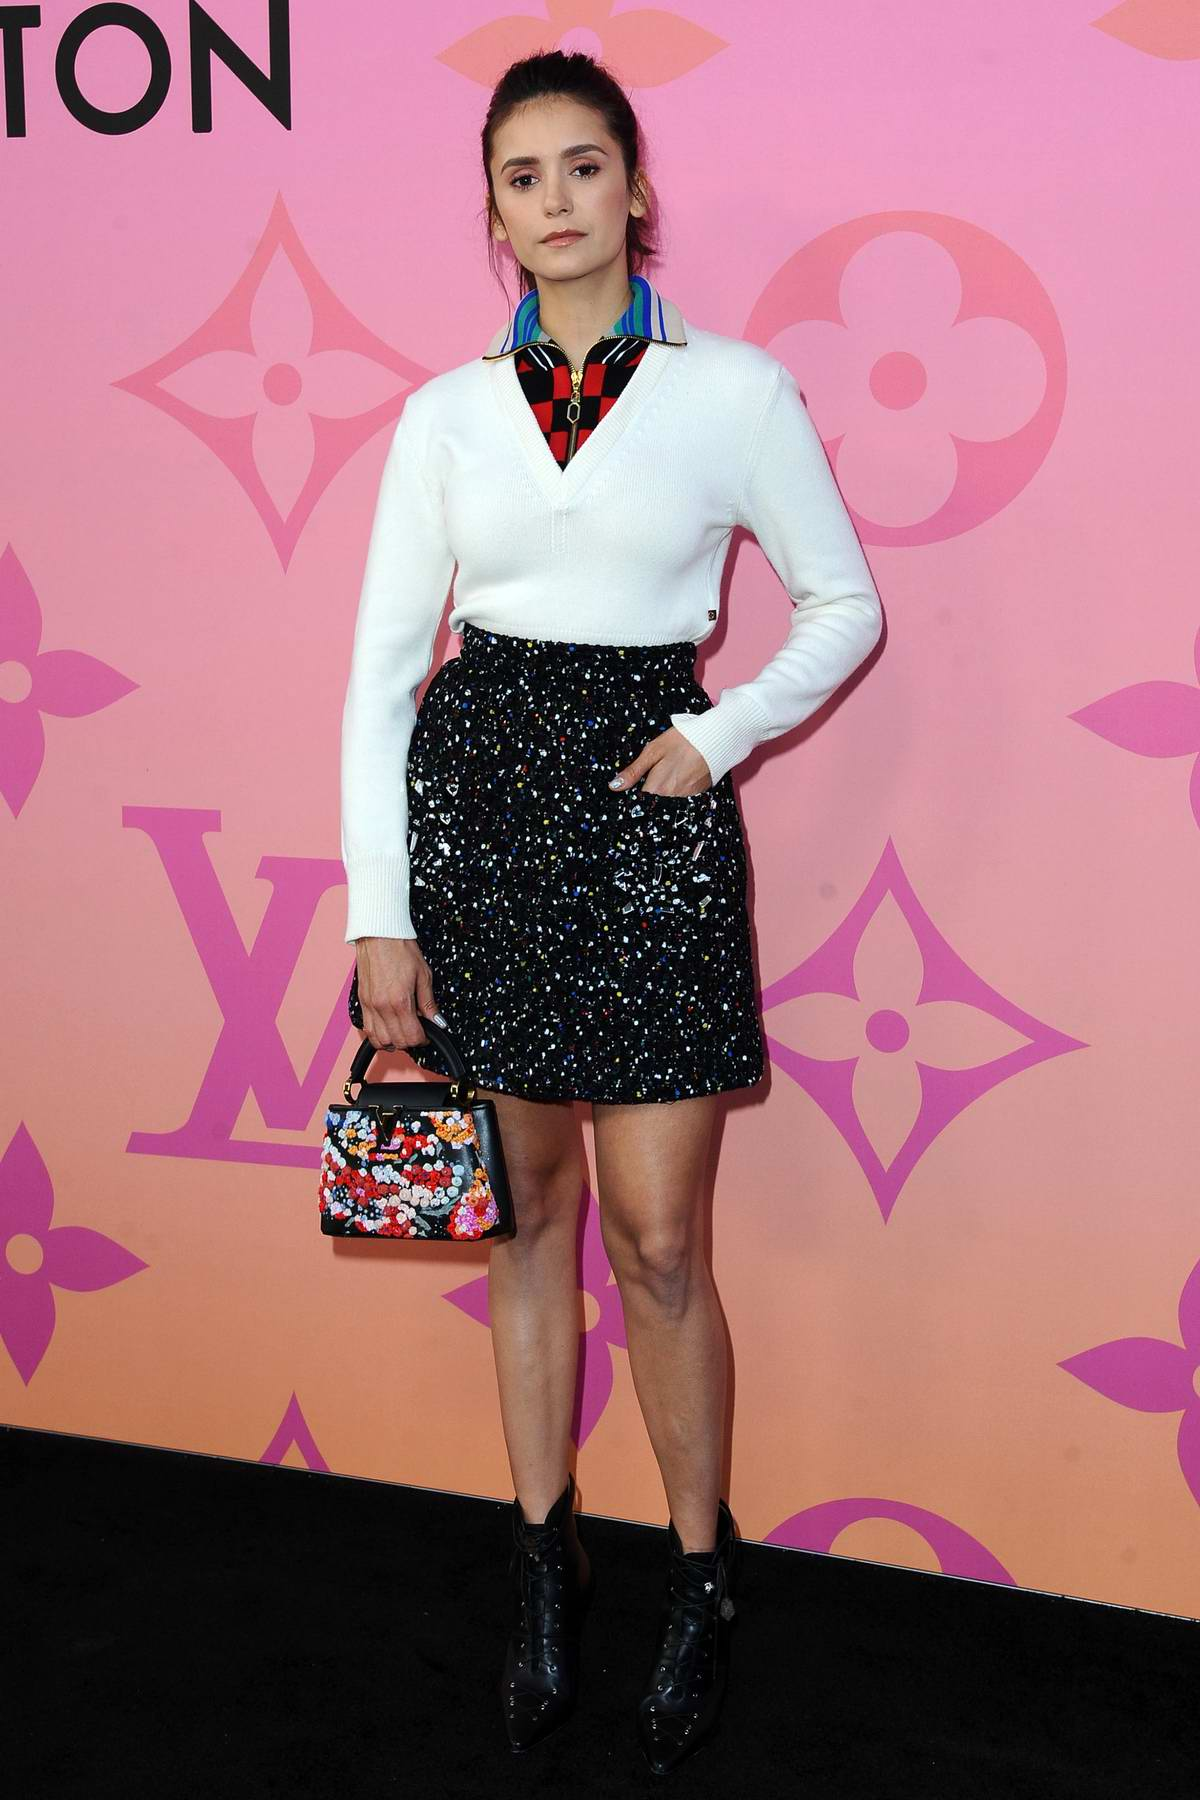 Nina Dobrev attends the Louis Vuitton X Cocktail Party in Beverly Hills, Los Angeles